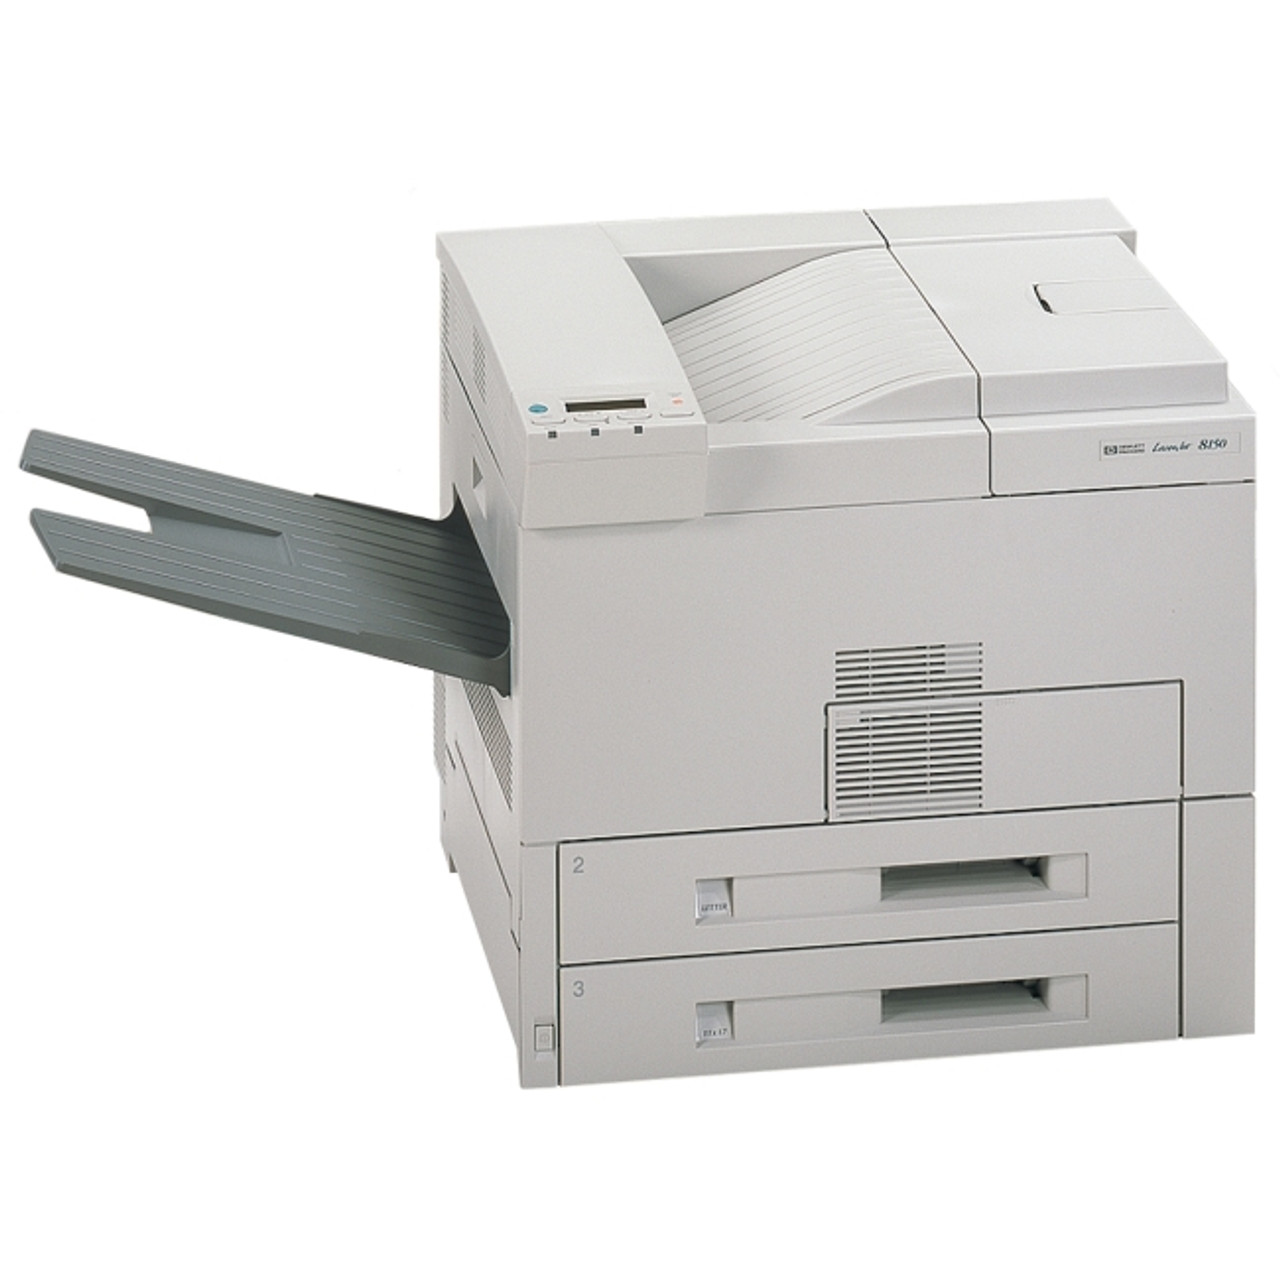 HP LaserJet 8100 - C4214A - HP Laser Printer for sale